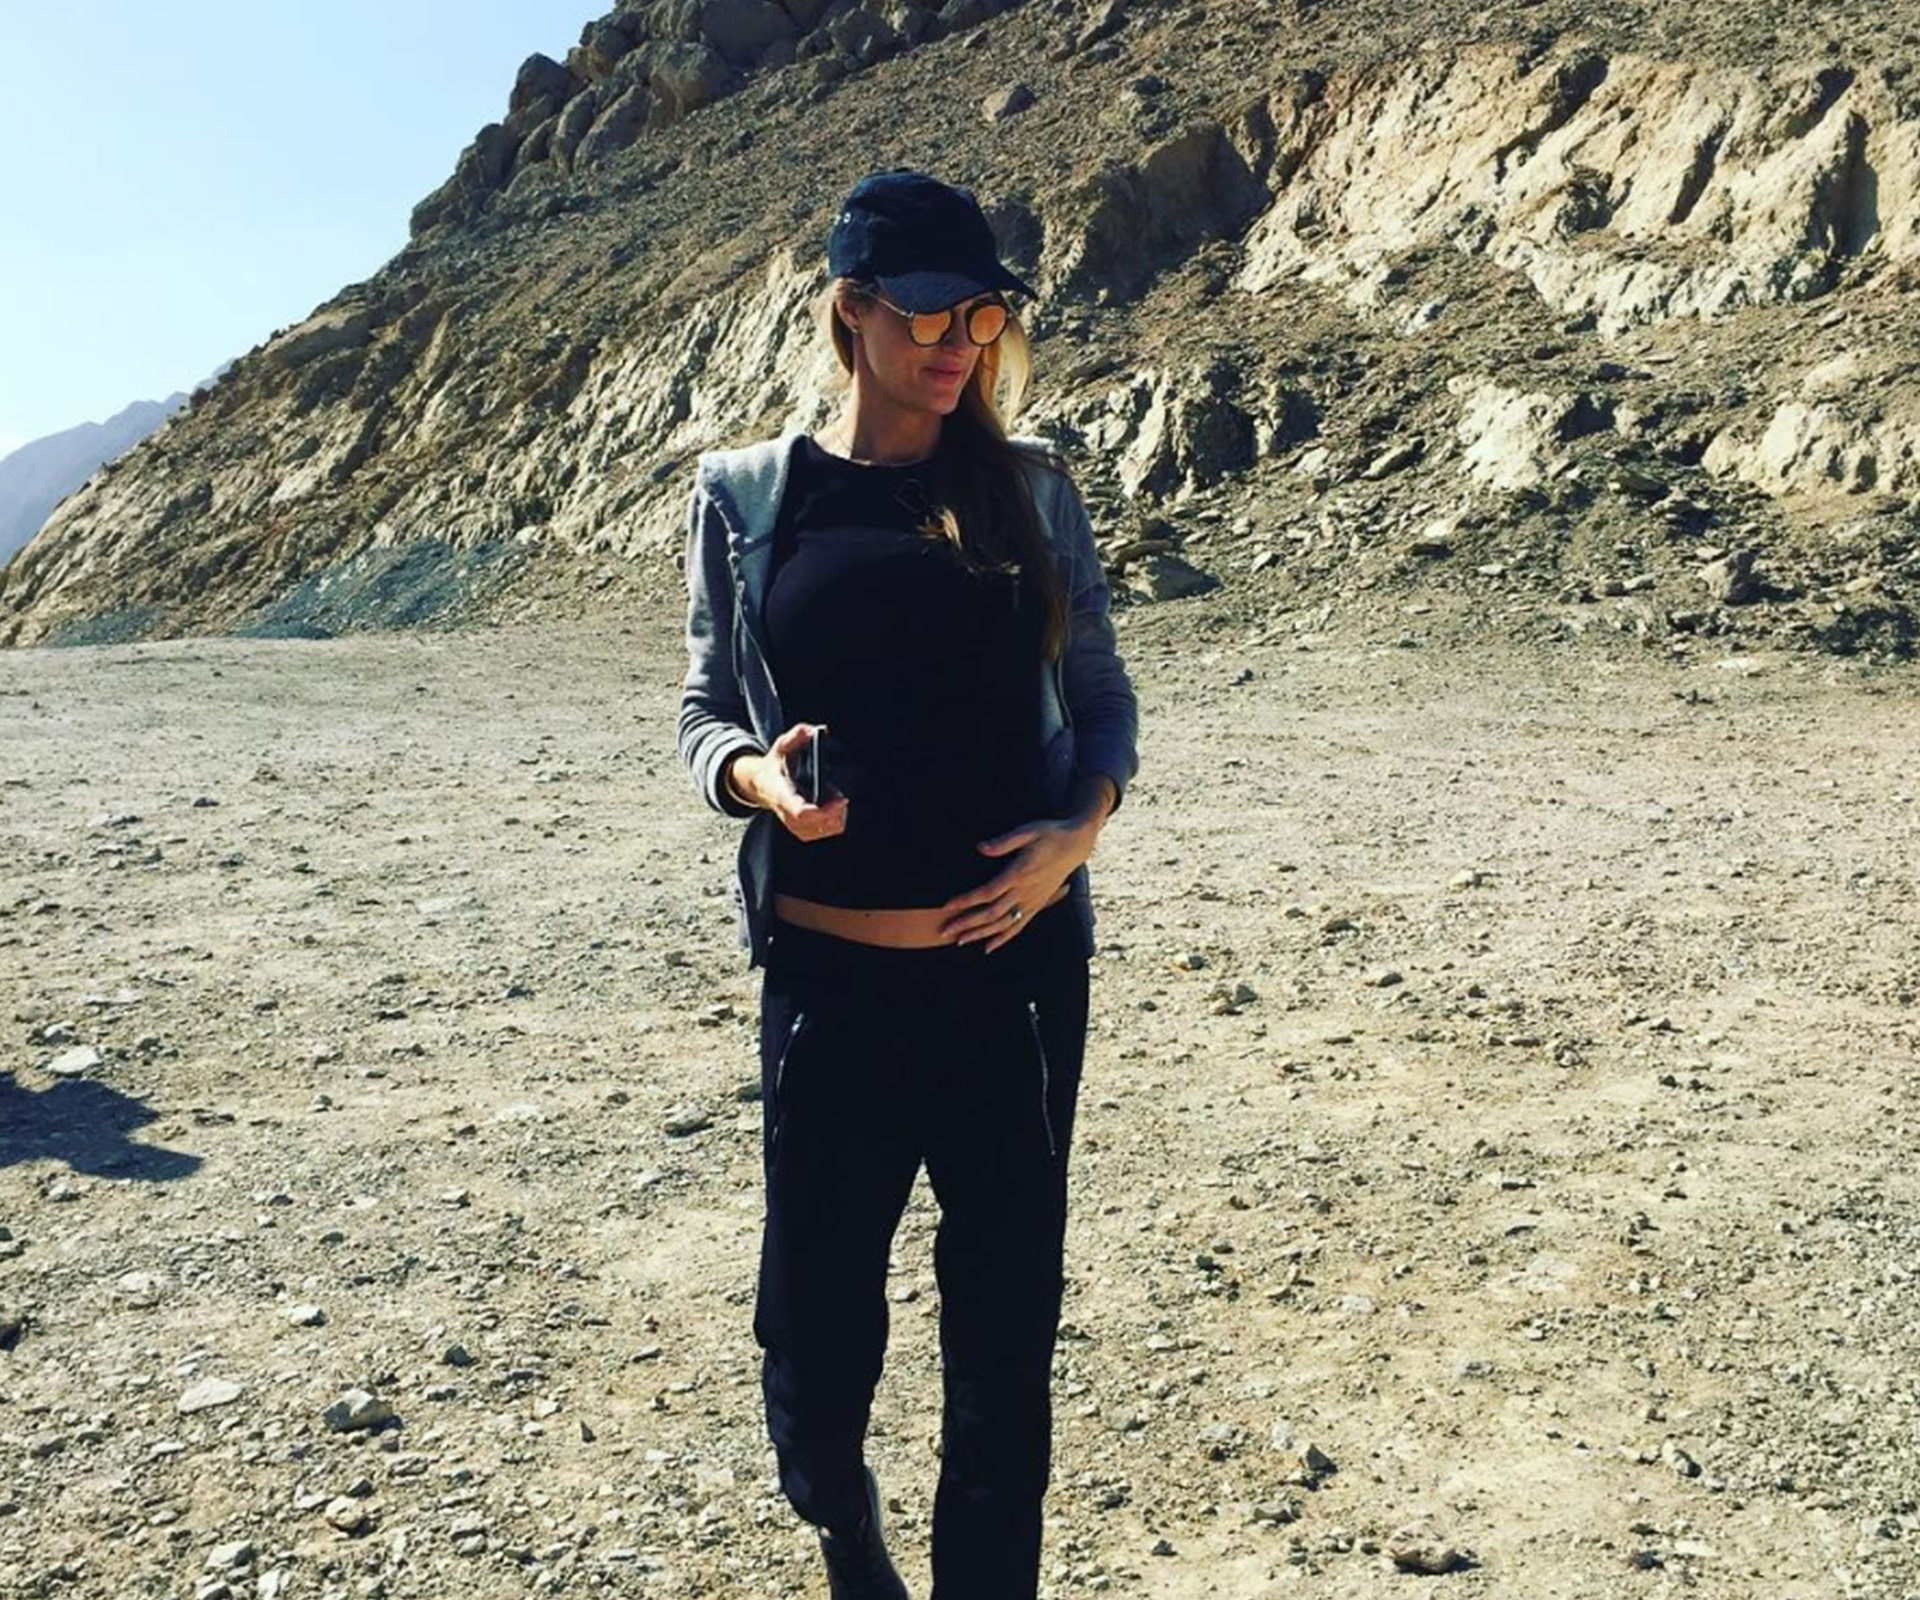 """Expectant dad Ronan Keating has taken to Instagram to gush over his pregnant wife Storm with this stunning snap from their romantic Oman getaway. """"Finally arrived in magnificent #Oman .... O-man she looks good,"""" he wrote."""